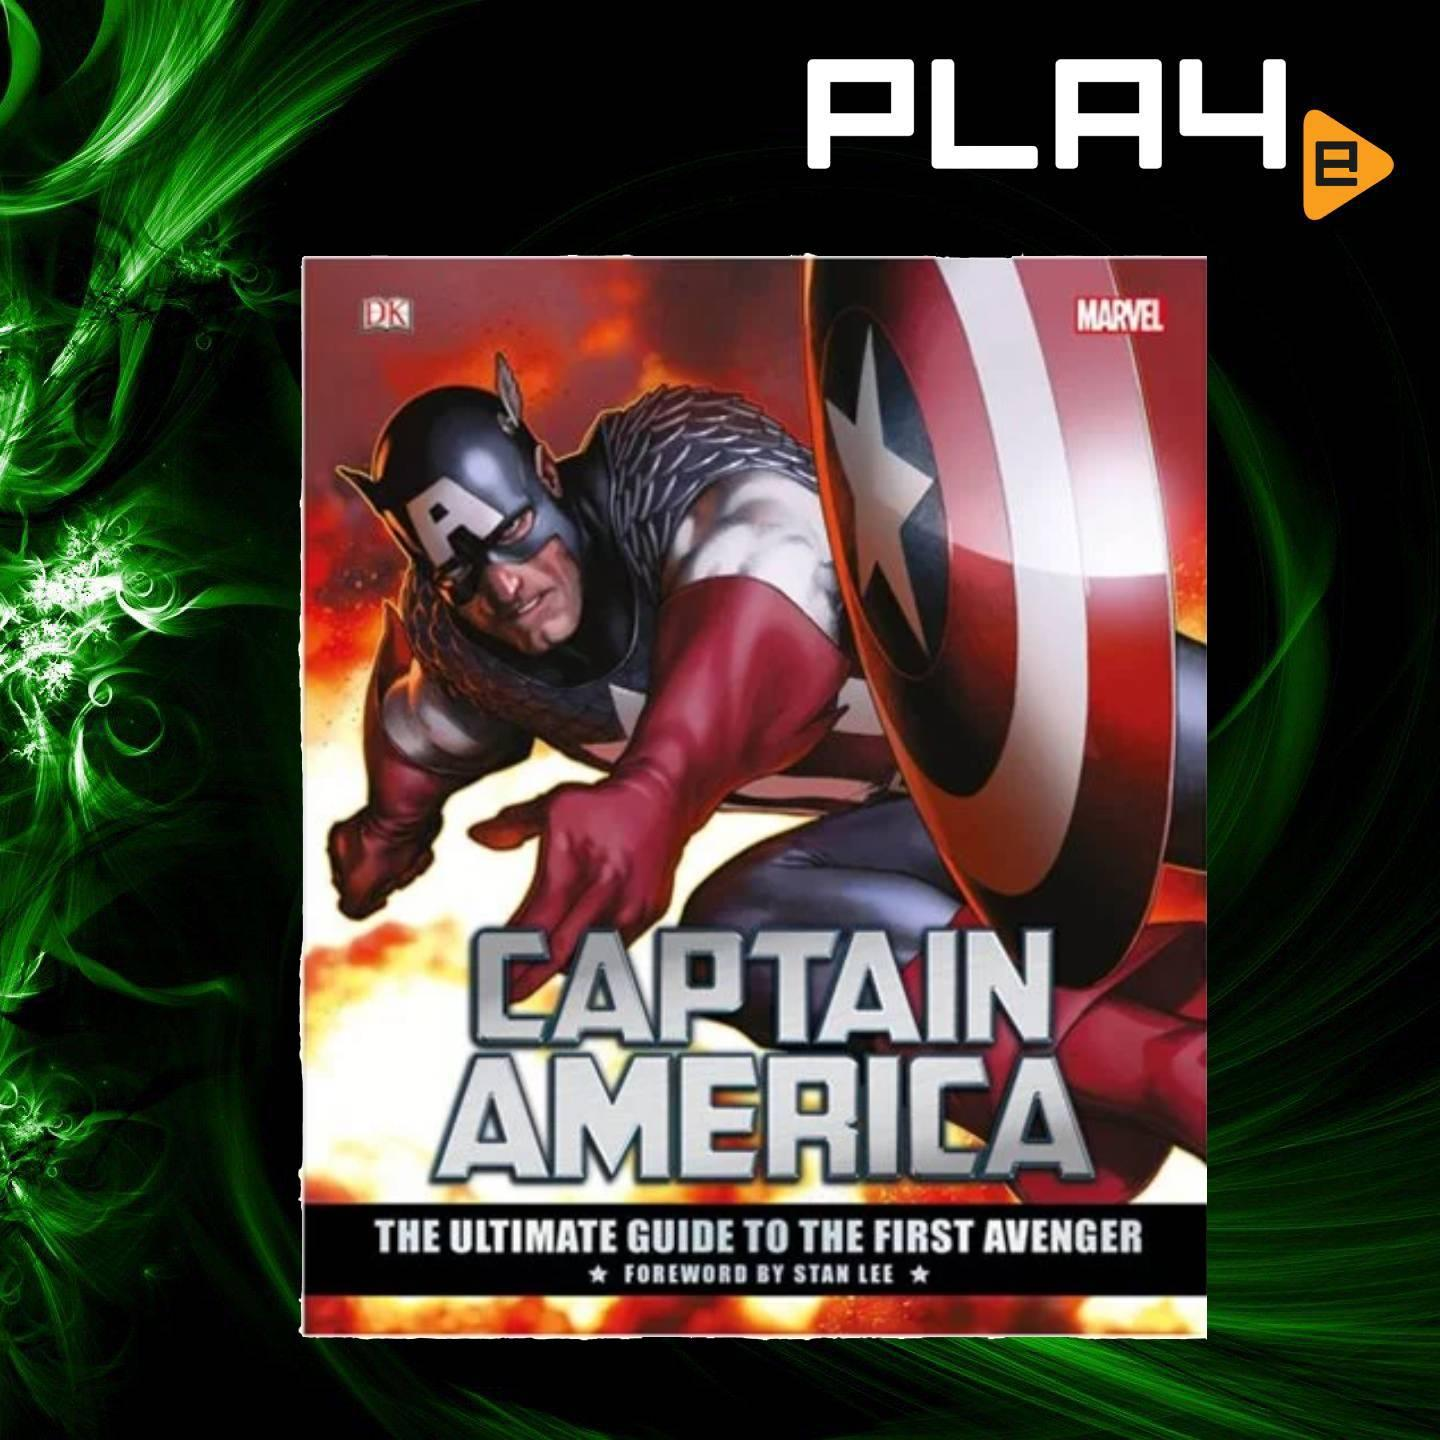 The Ultimate Guide to the First Avenger Hardcover